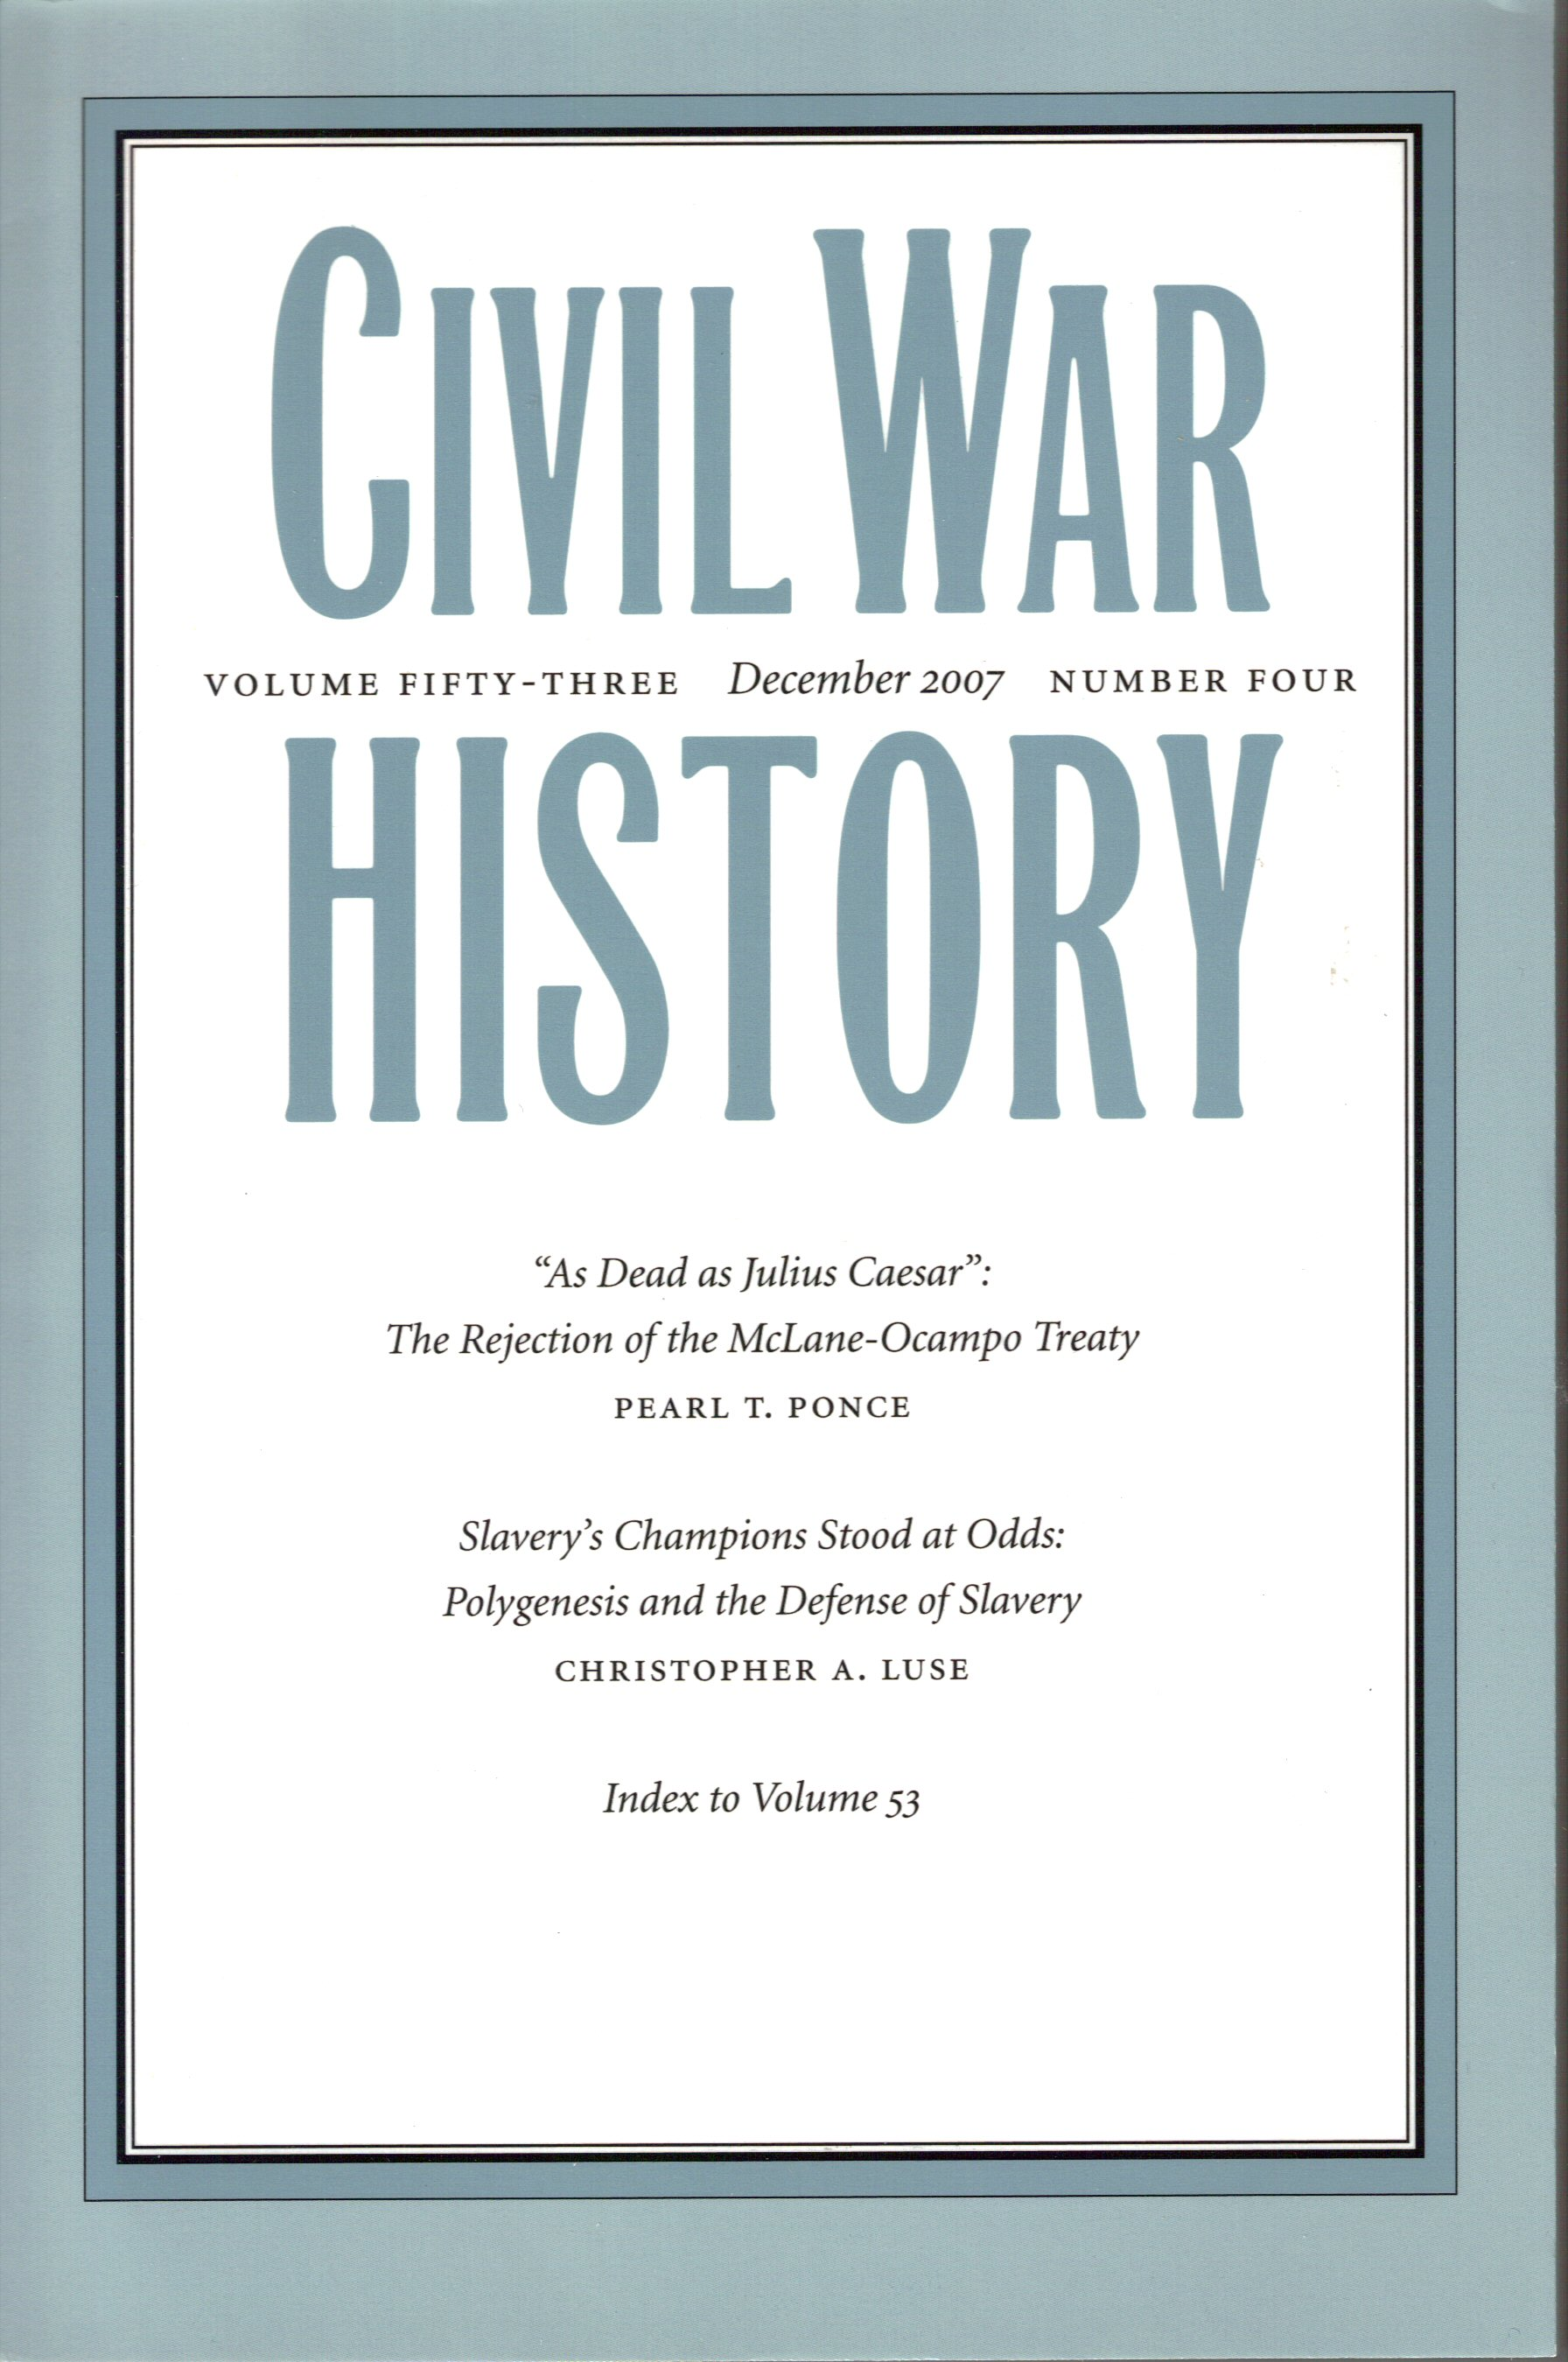 Civil War History, Volume 53, Number 4 (December 2007)